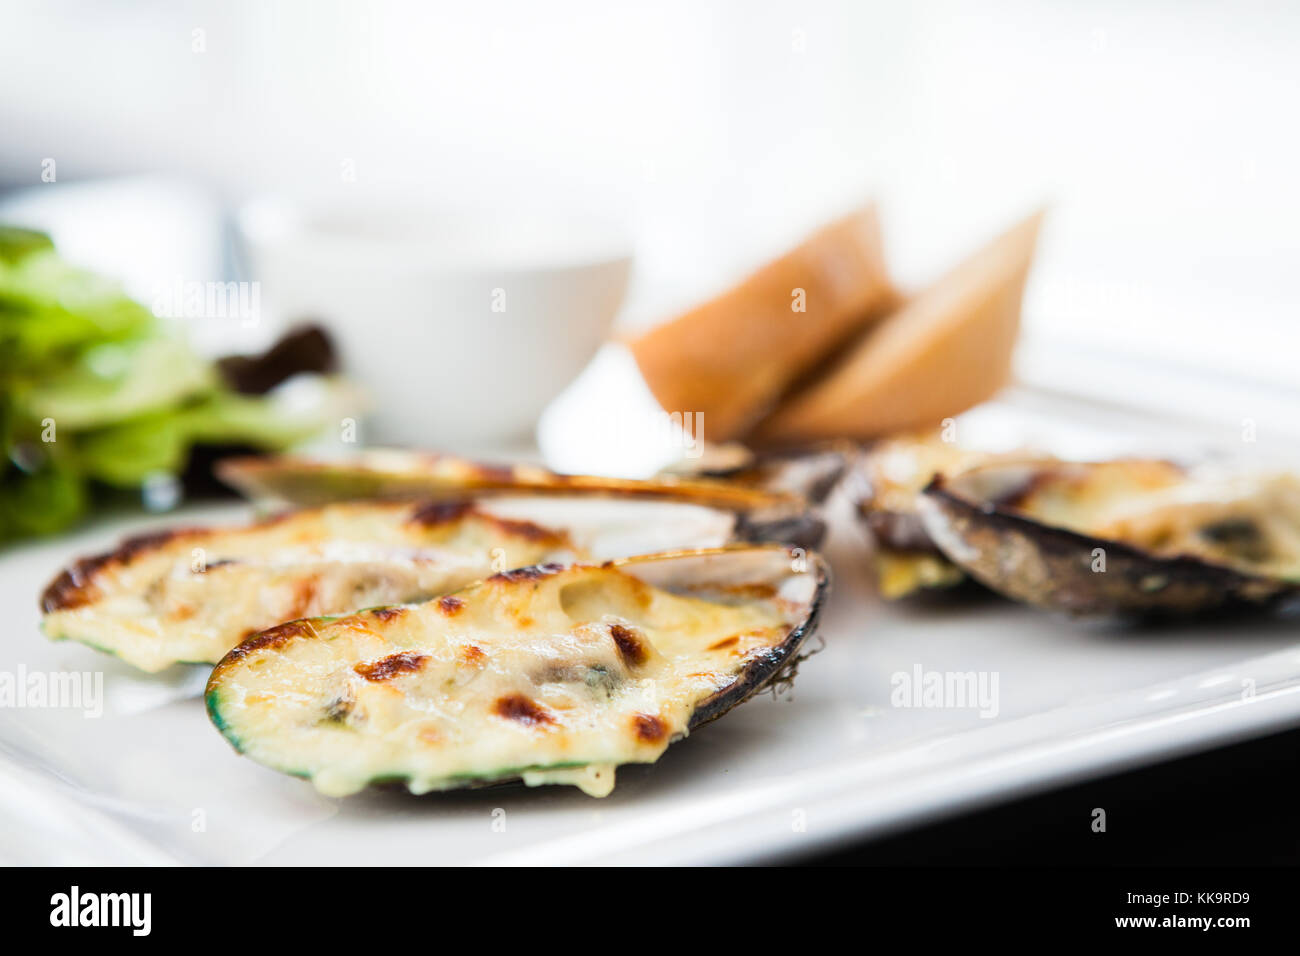 Baked mussels au gratin with salad and sauce - Stock Image